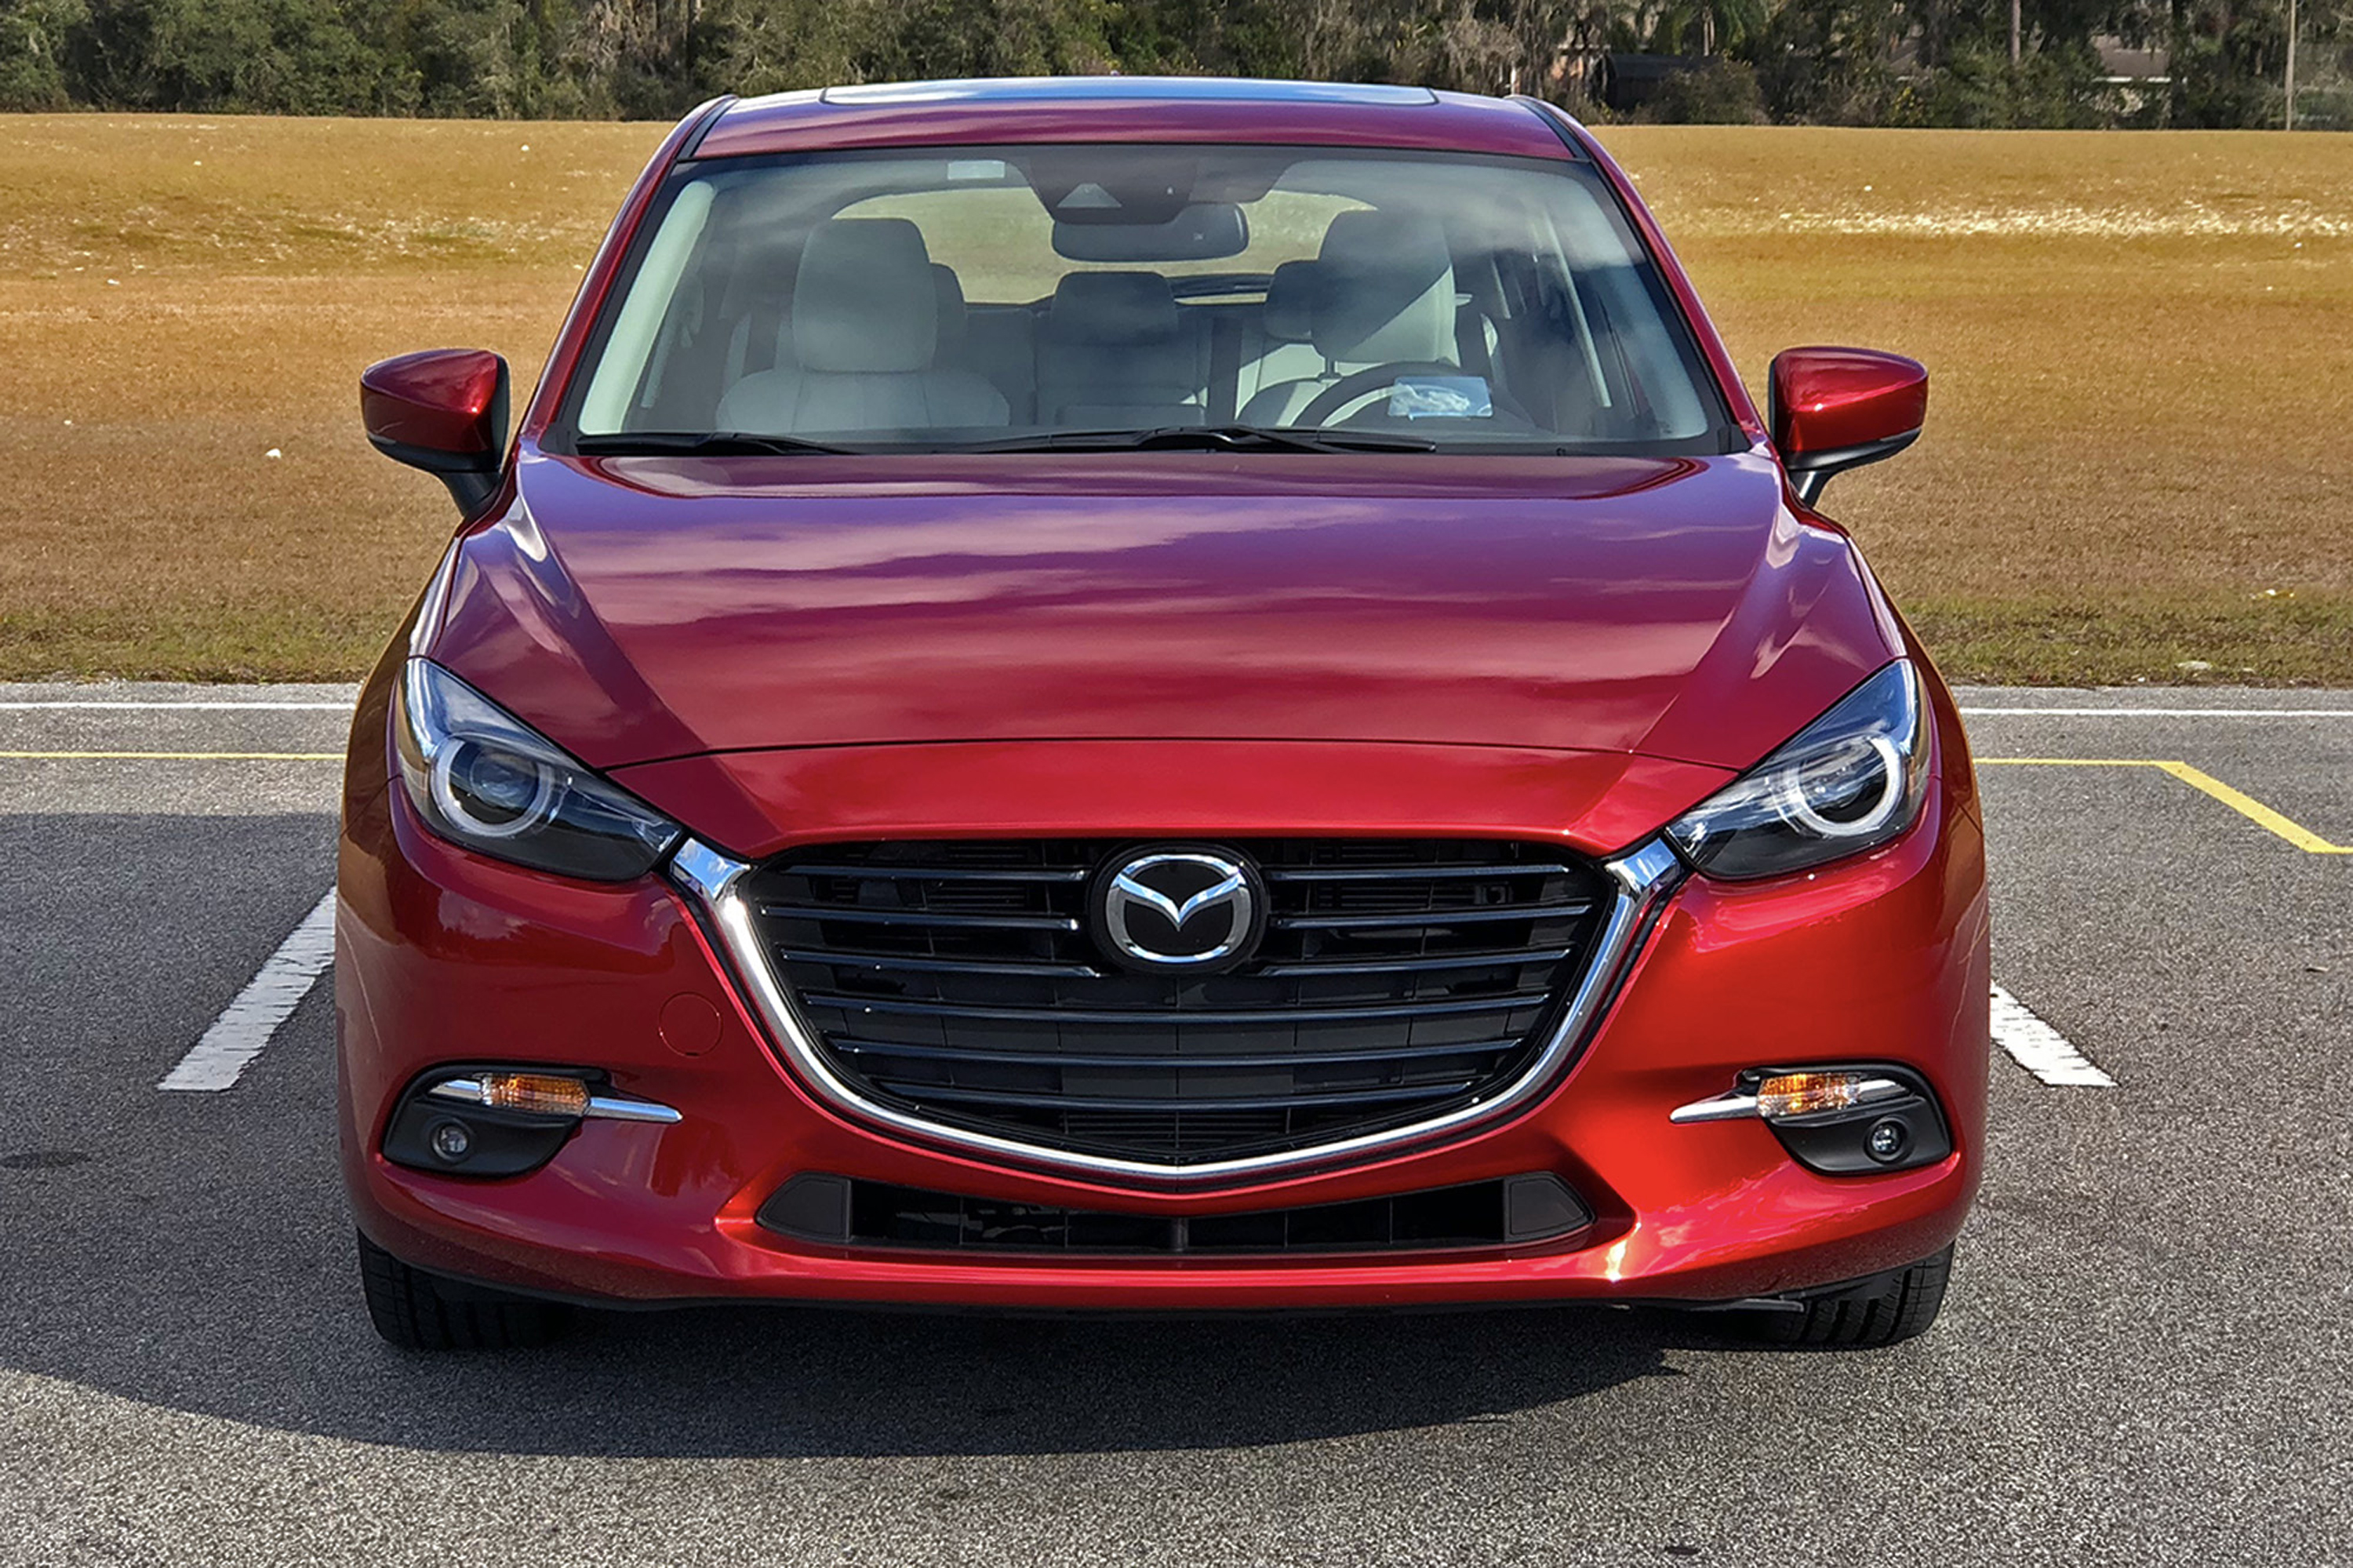 Mazda 3 Owners Manual: Direct Mode